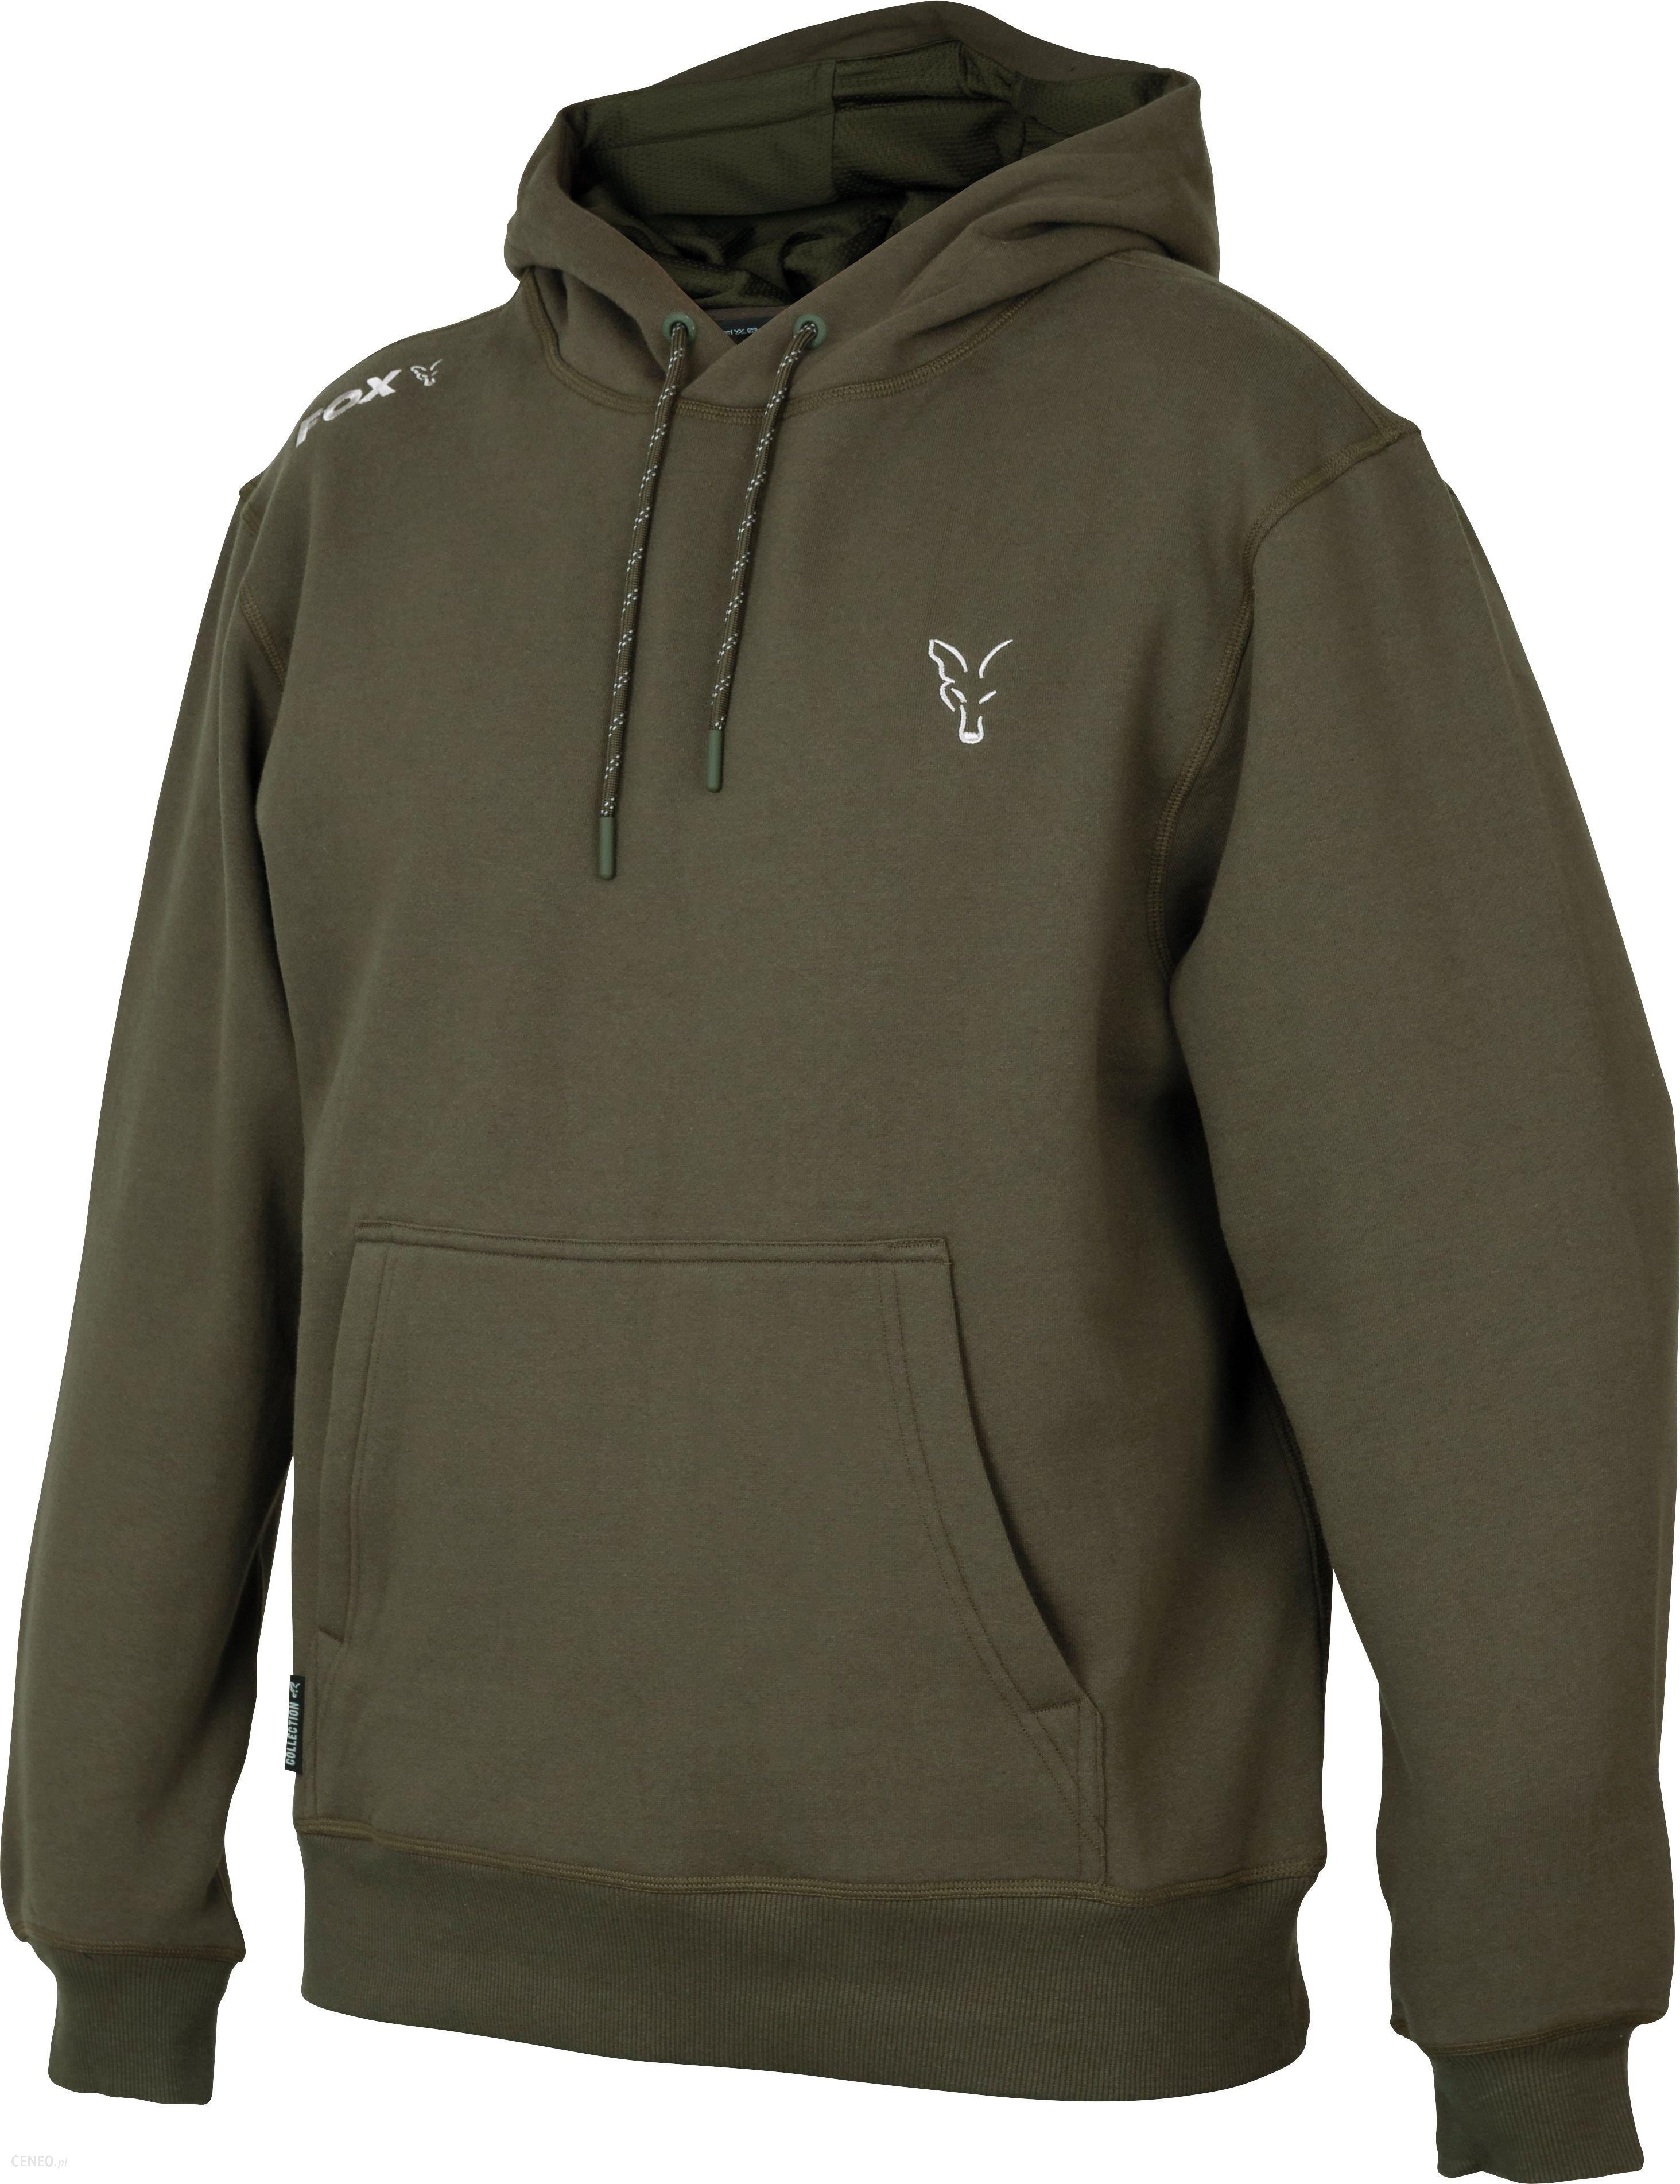 Fox Collection Green & Silver Hoodie Xxl (Ccl011)